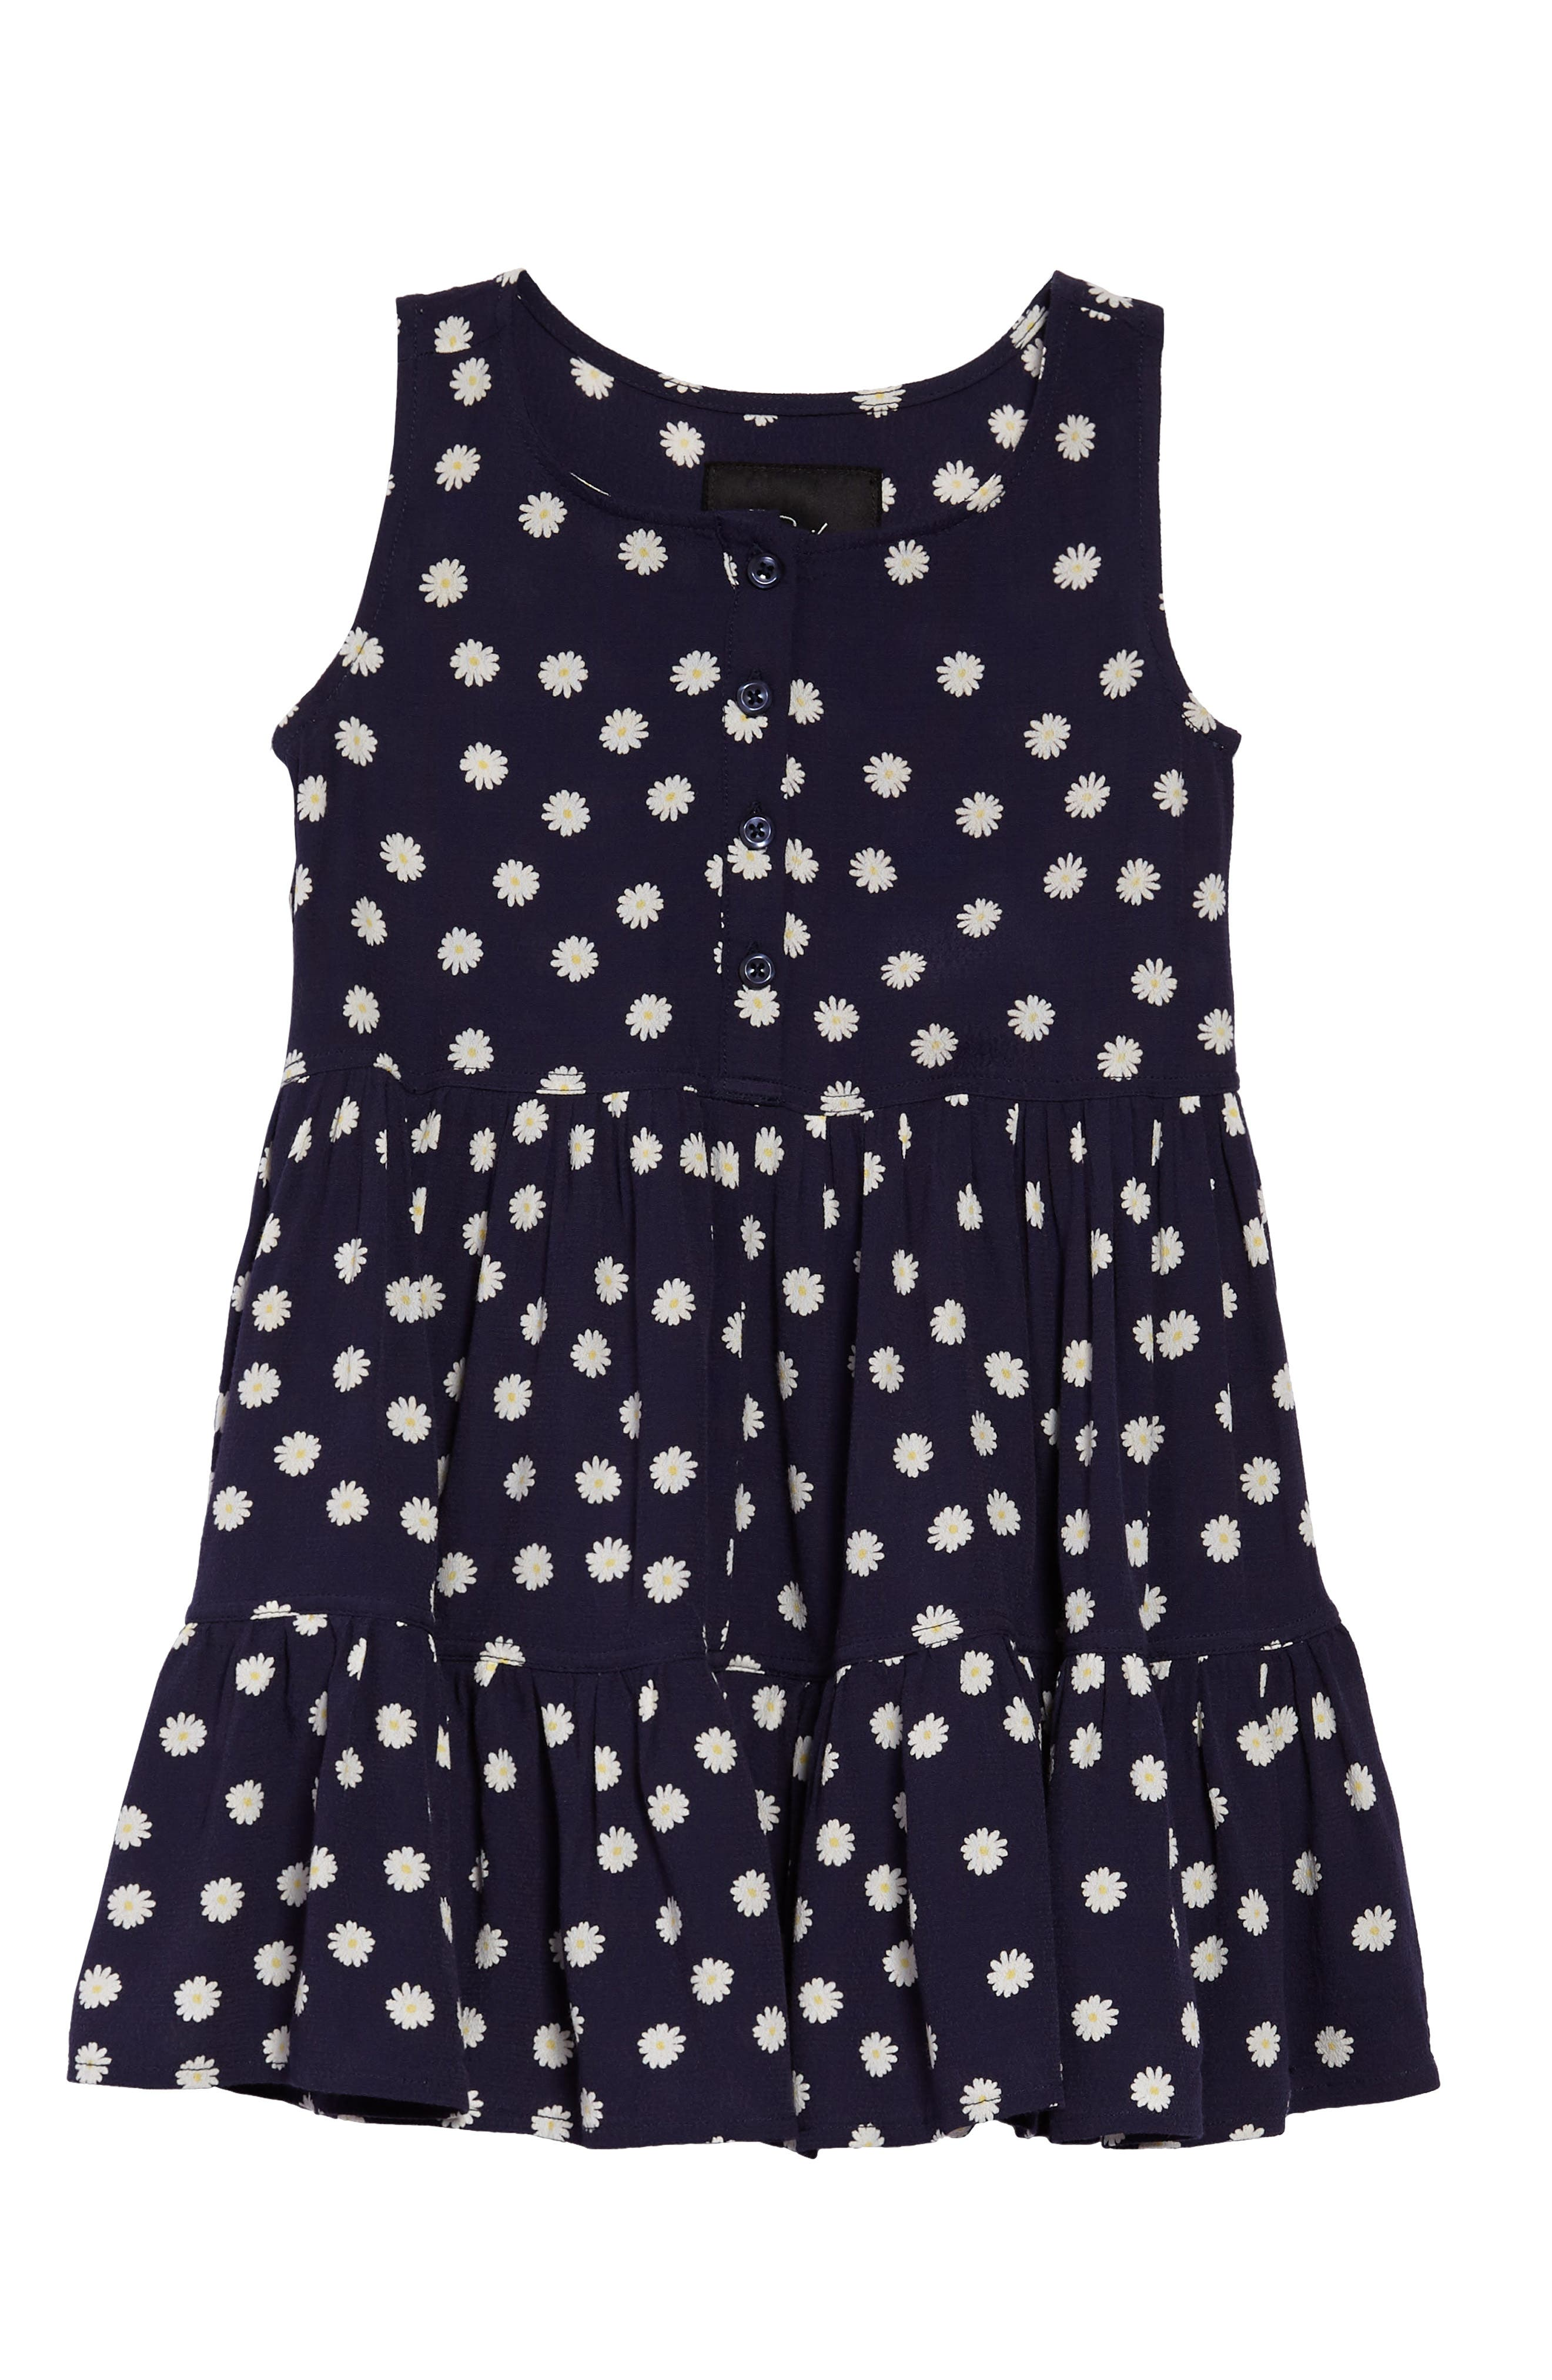 Alternate Image 1 Selected - Rails Katie Tiered Dress (Toddler Girls, Little Girls & Big Girls)